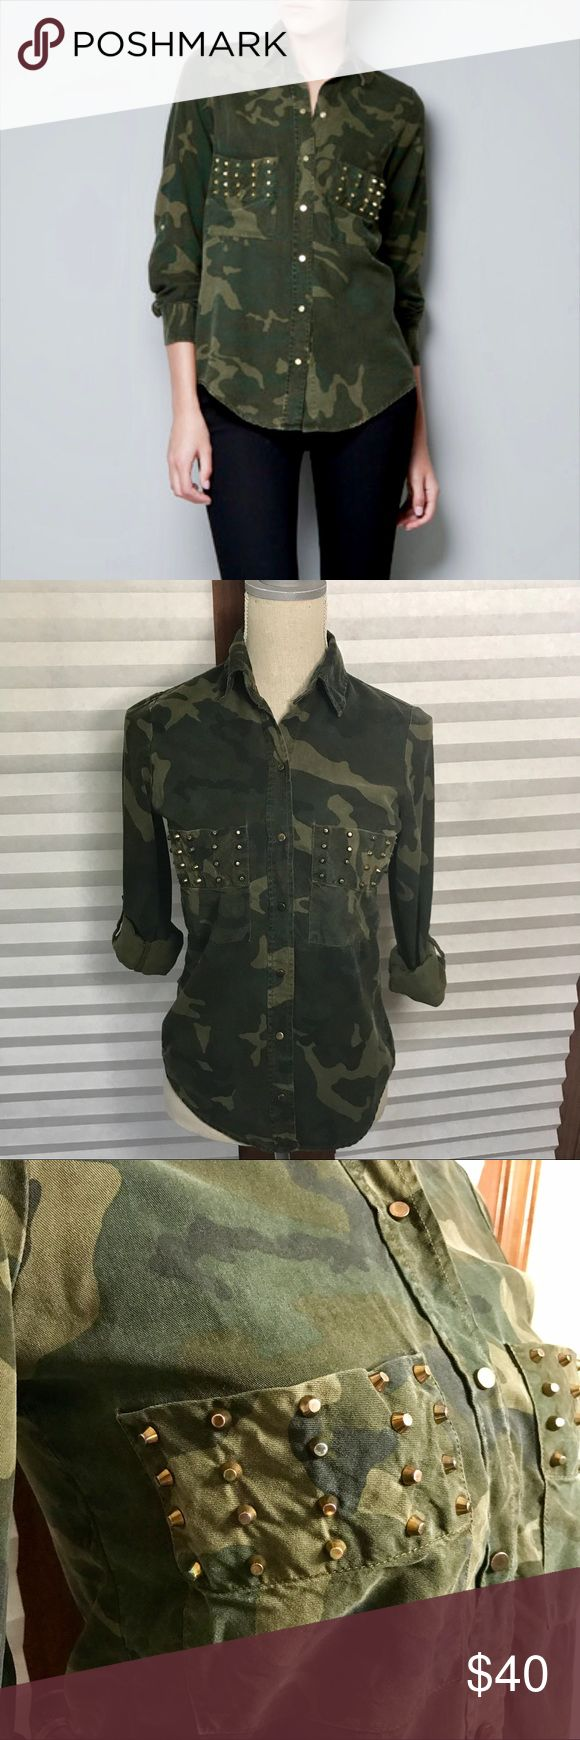 Zara Woman Camo Top with Studs Zara Woman Camo Top with Studs Super soft material Snap closures One stud missing from the bottom of the left pocket but not noticeable Zara Tops Button Down Shirts